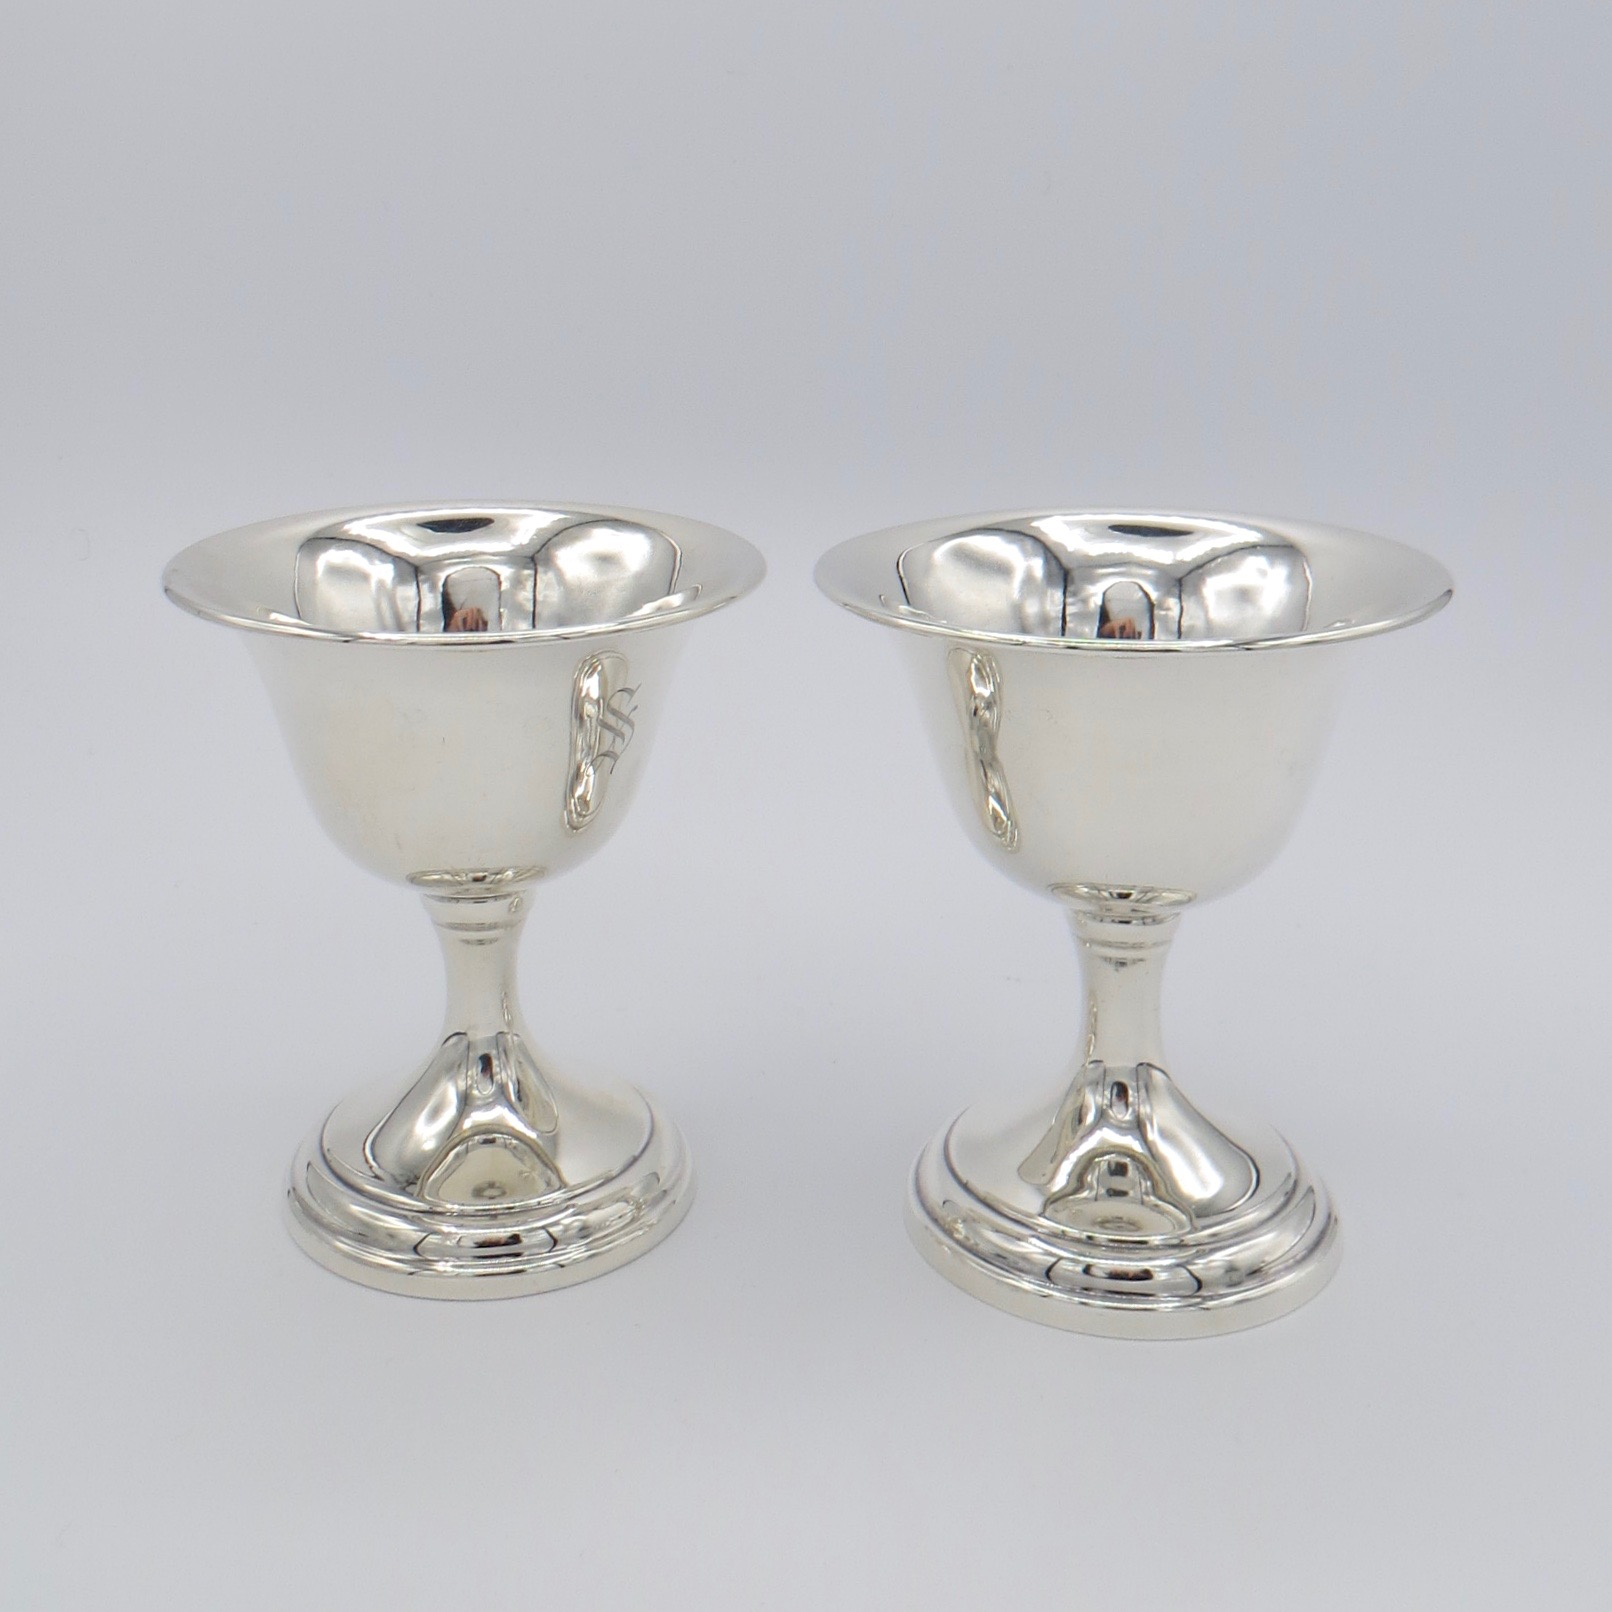 Pair of Sterling Silver Goblets